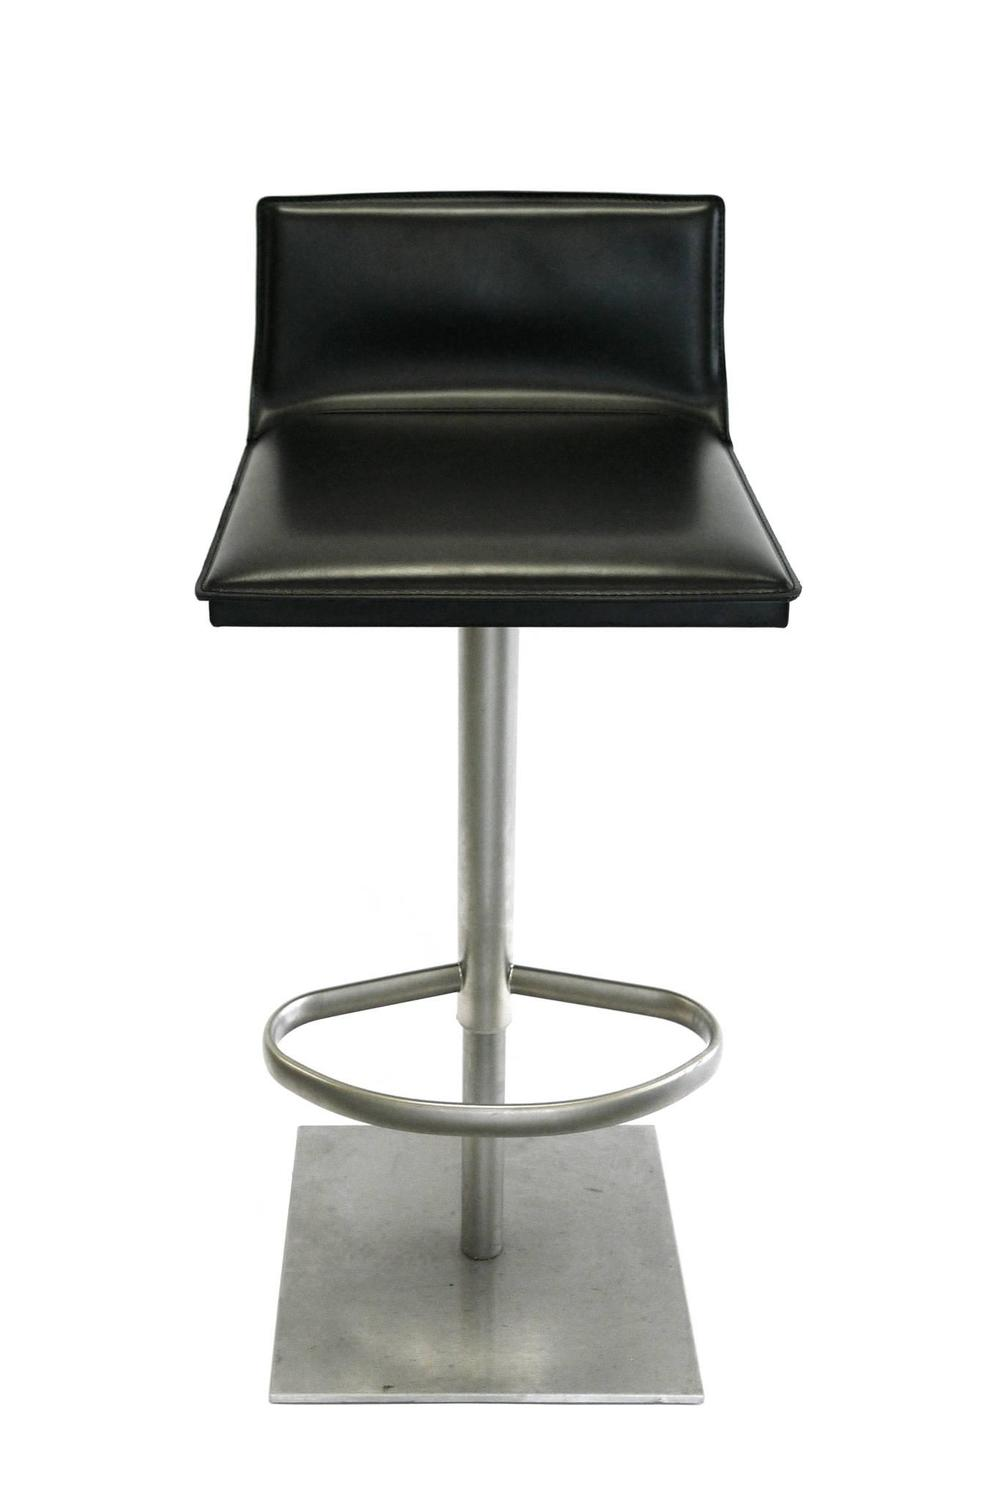 Italian Leather And Steel Height Adjustable Bar Stool By